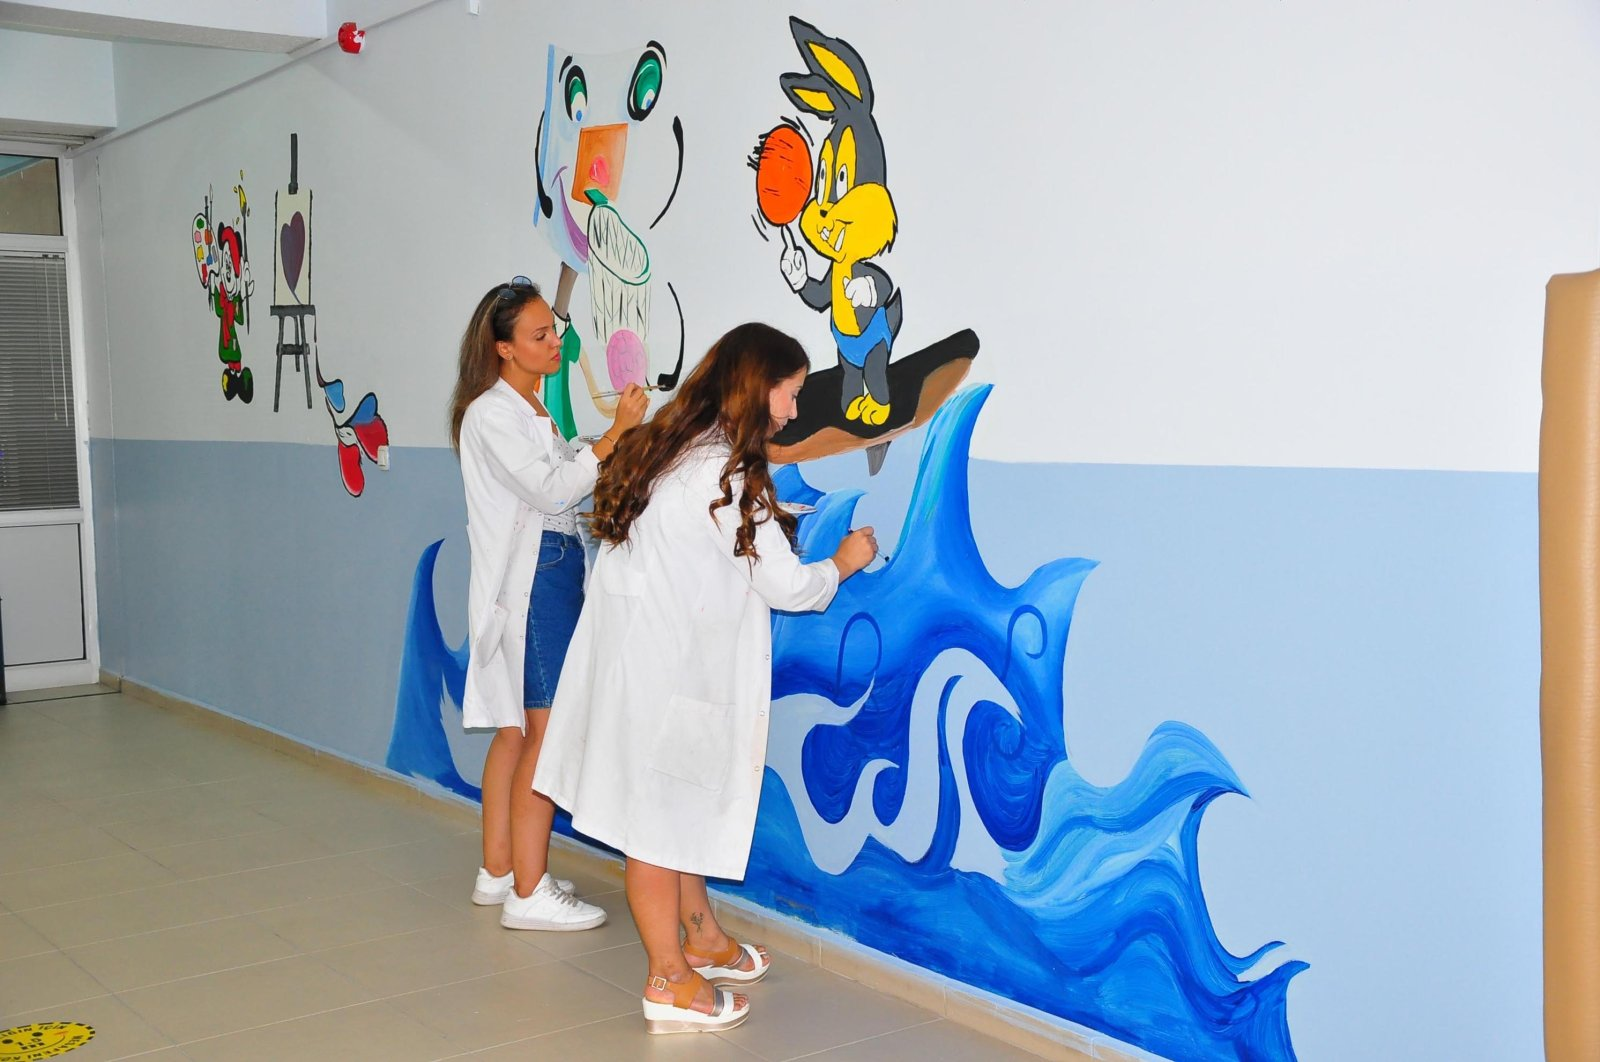 Two teachers paint cartoon characters on the walls of a classroom for preschoolers, in Manisa, western Turkey, Aug. 27, 2021. (DHA PHOTO)